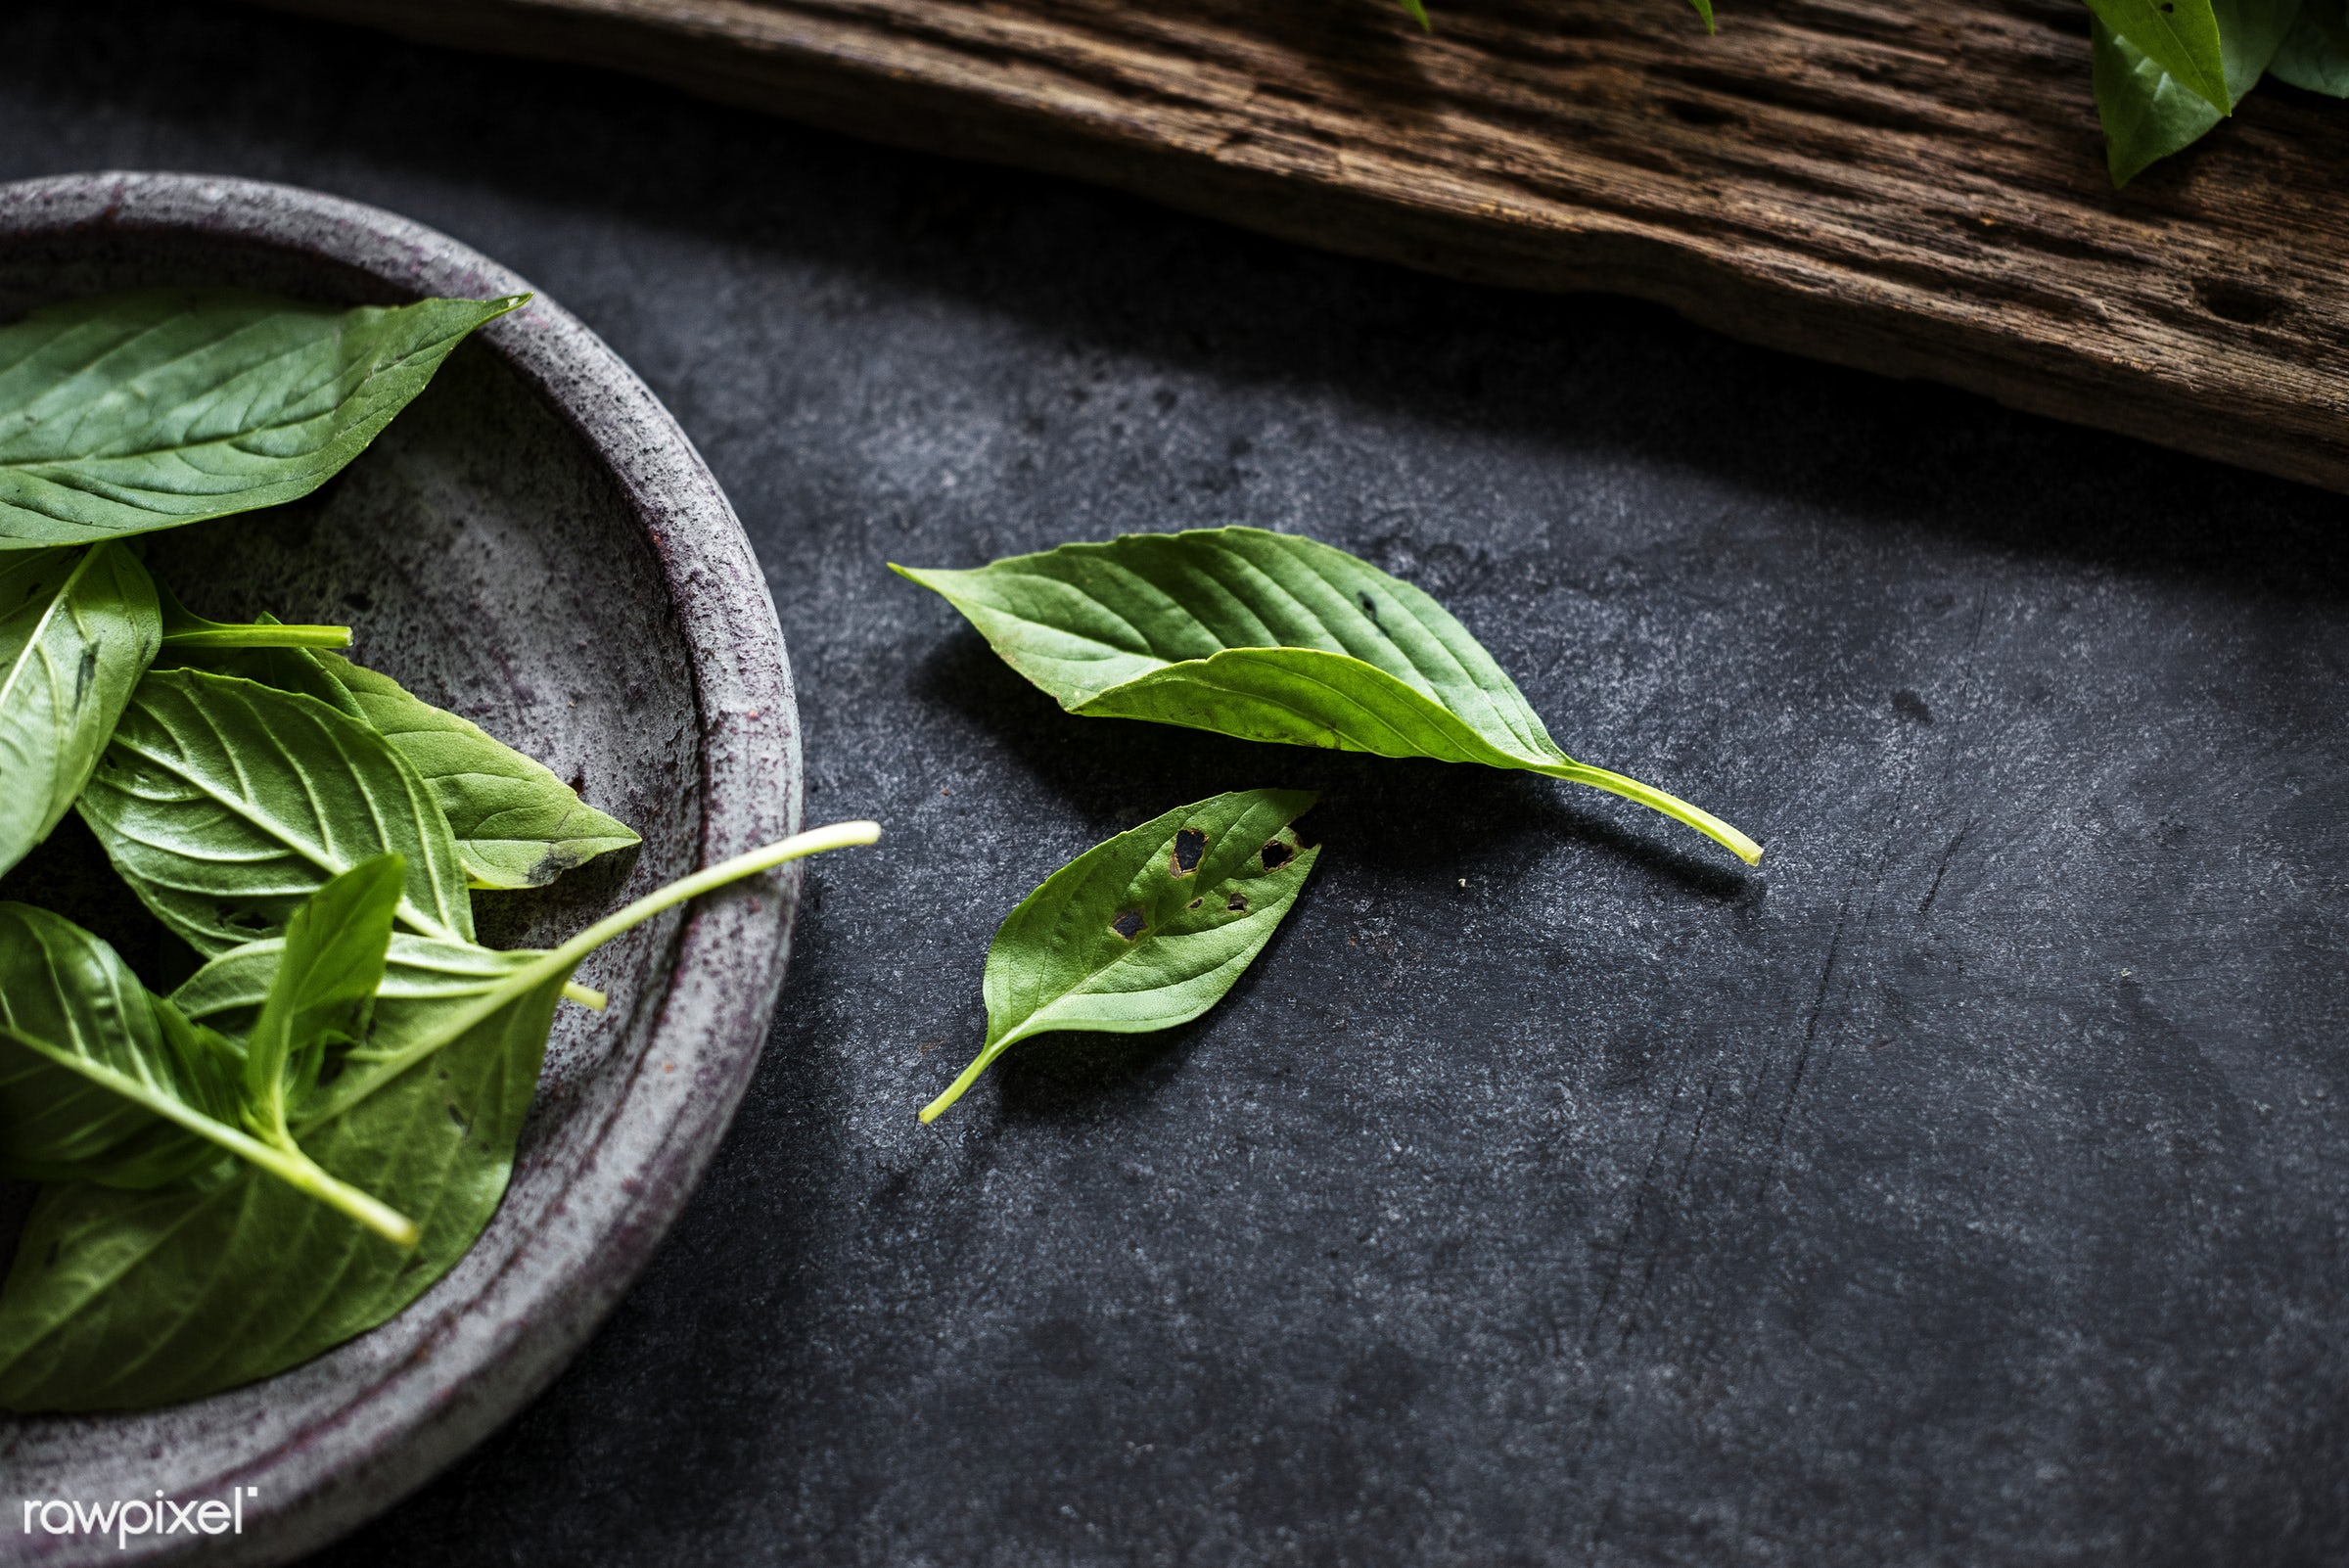 Fresh basil leaves asian herb - nobody, herbs, leaves, spices, basil, asian, ingredients, black background, real, asian...